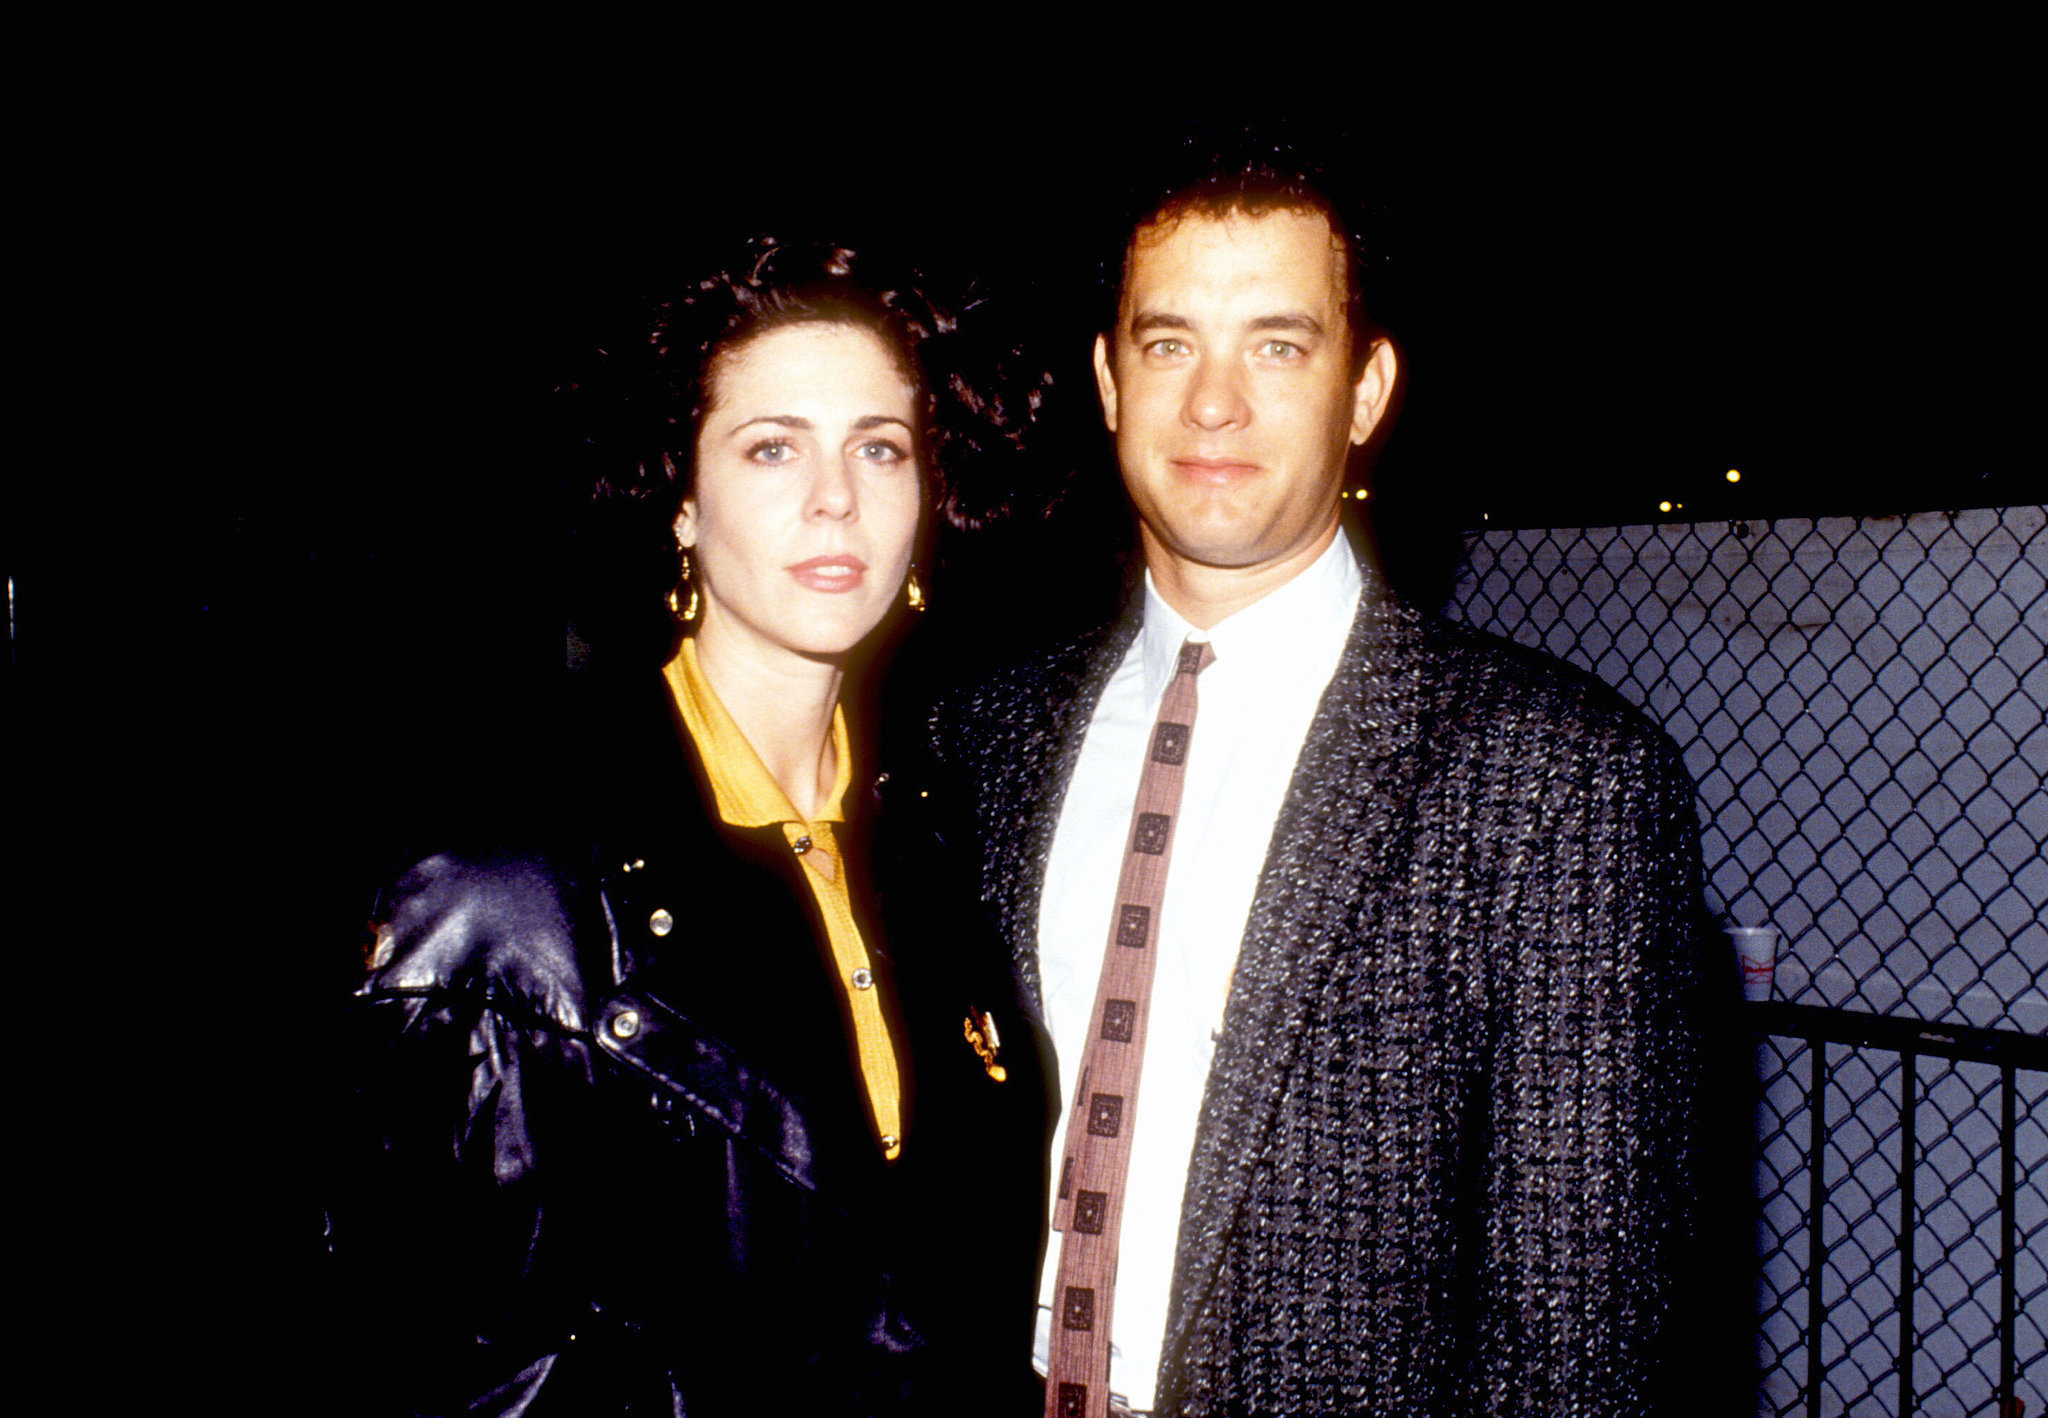 Tom Hanks and Rita Wilson, 1980